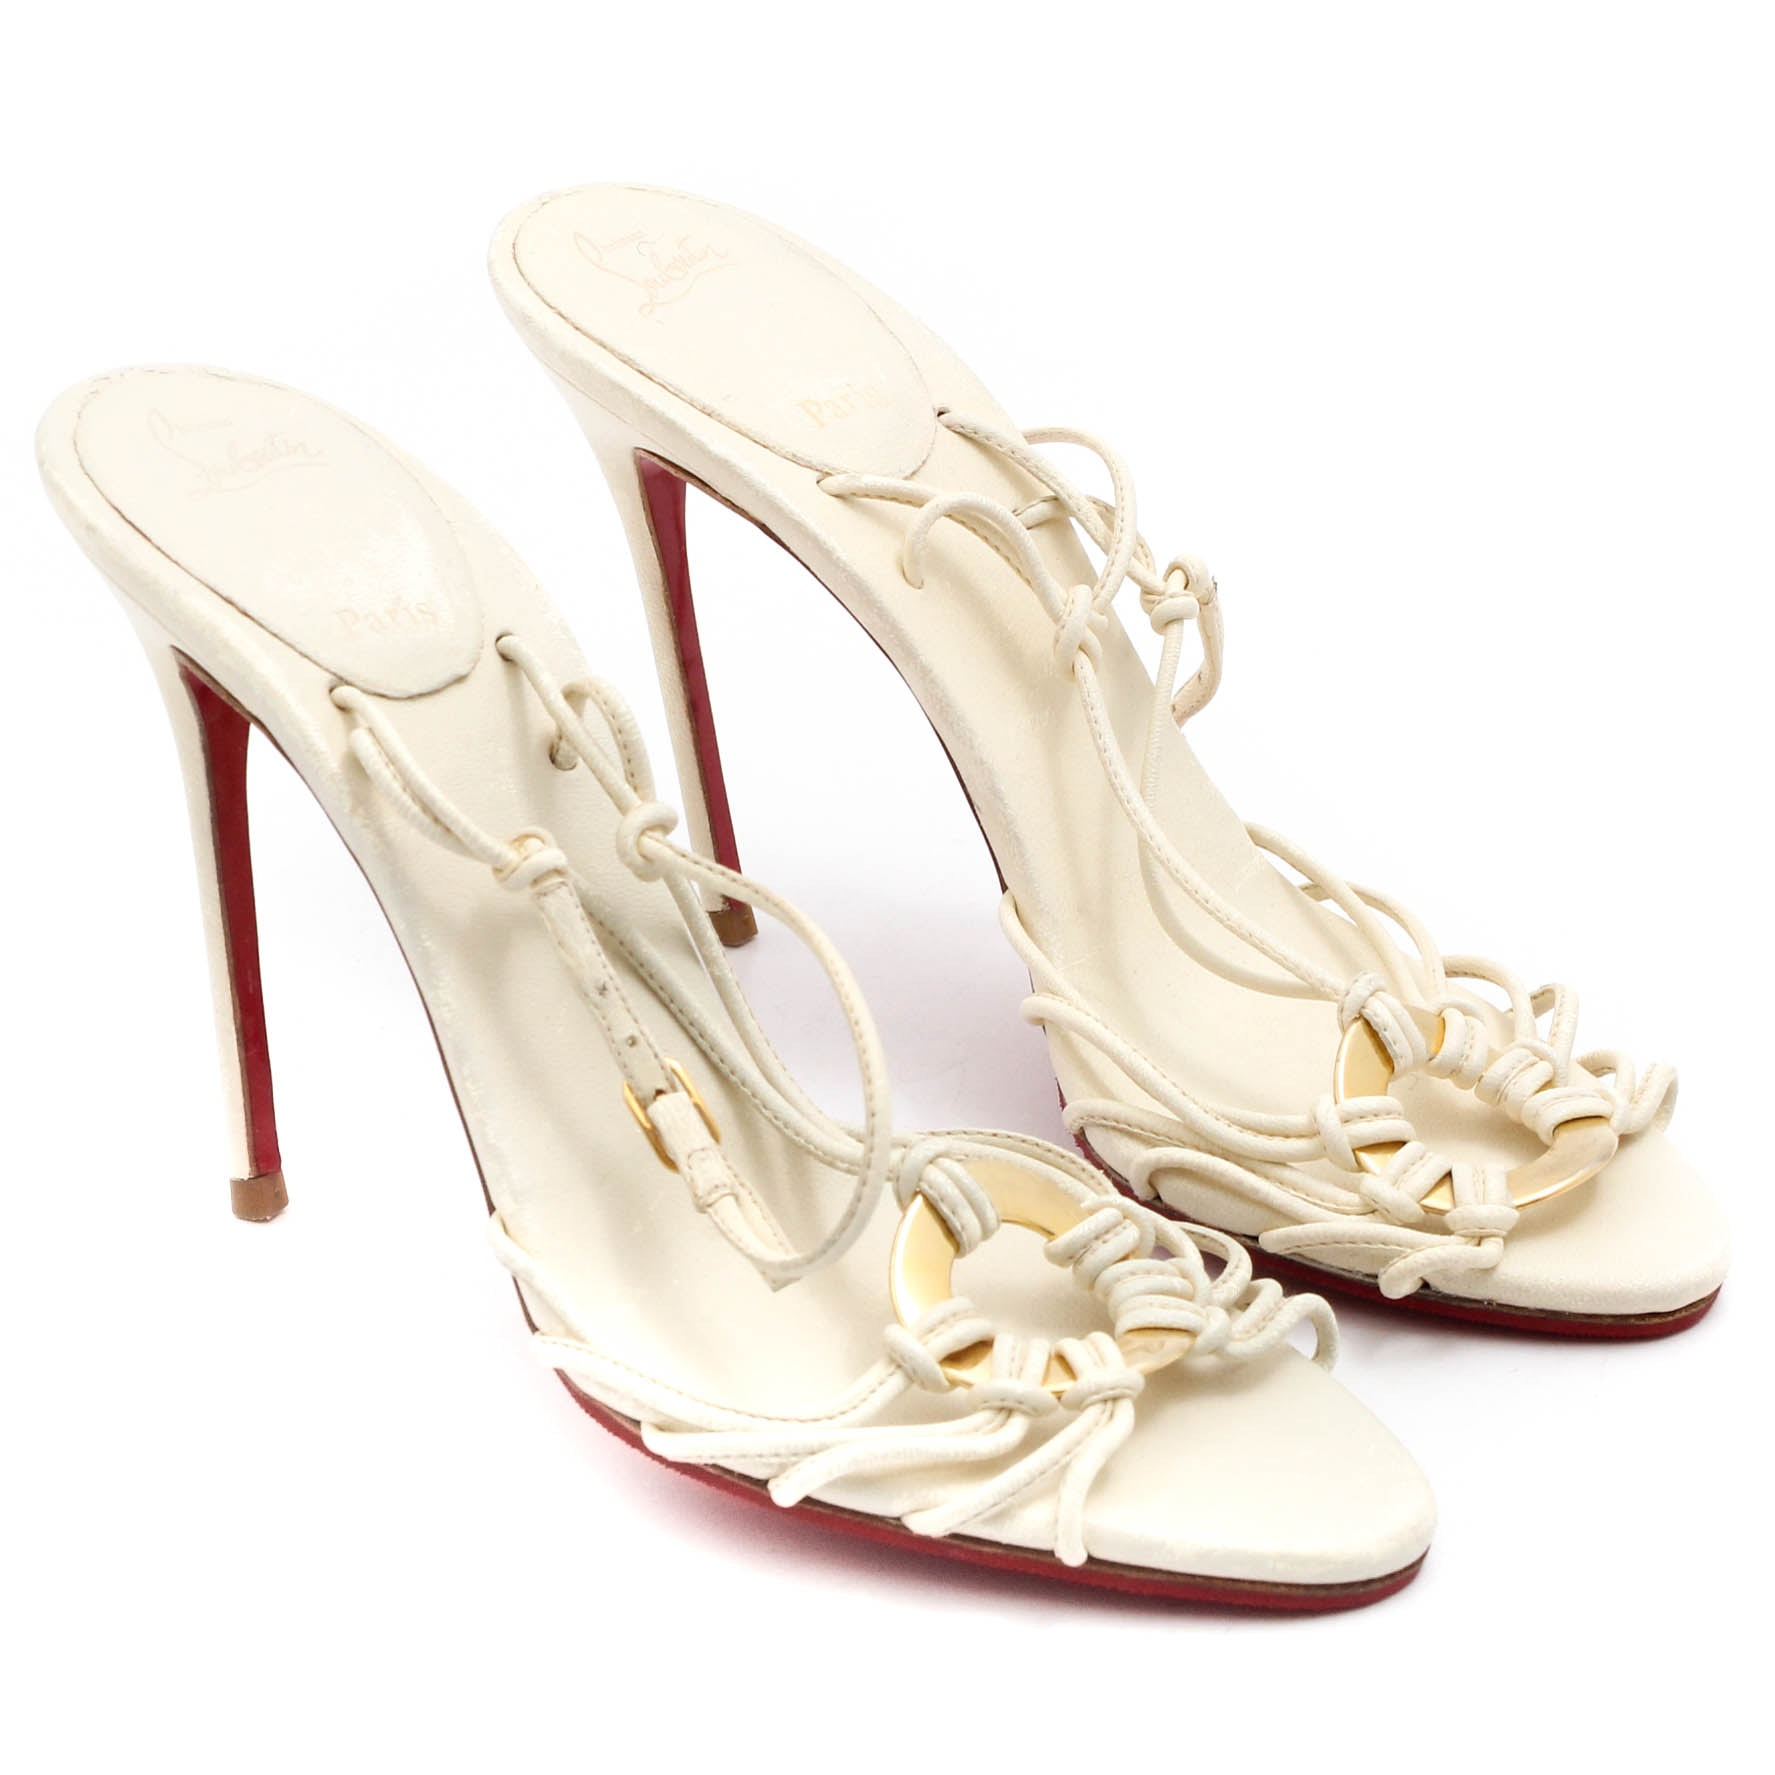 Women's Christian Louboutin Ivory Leather Strappy Heeled Sandals